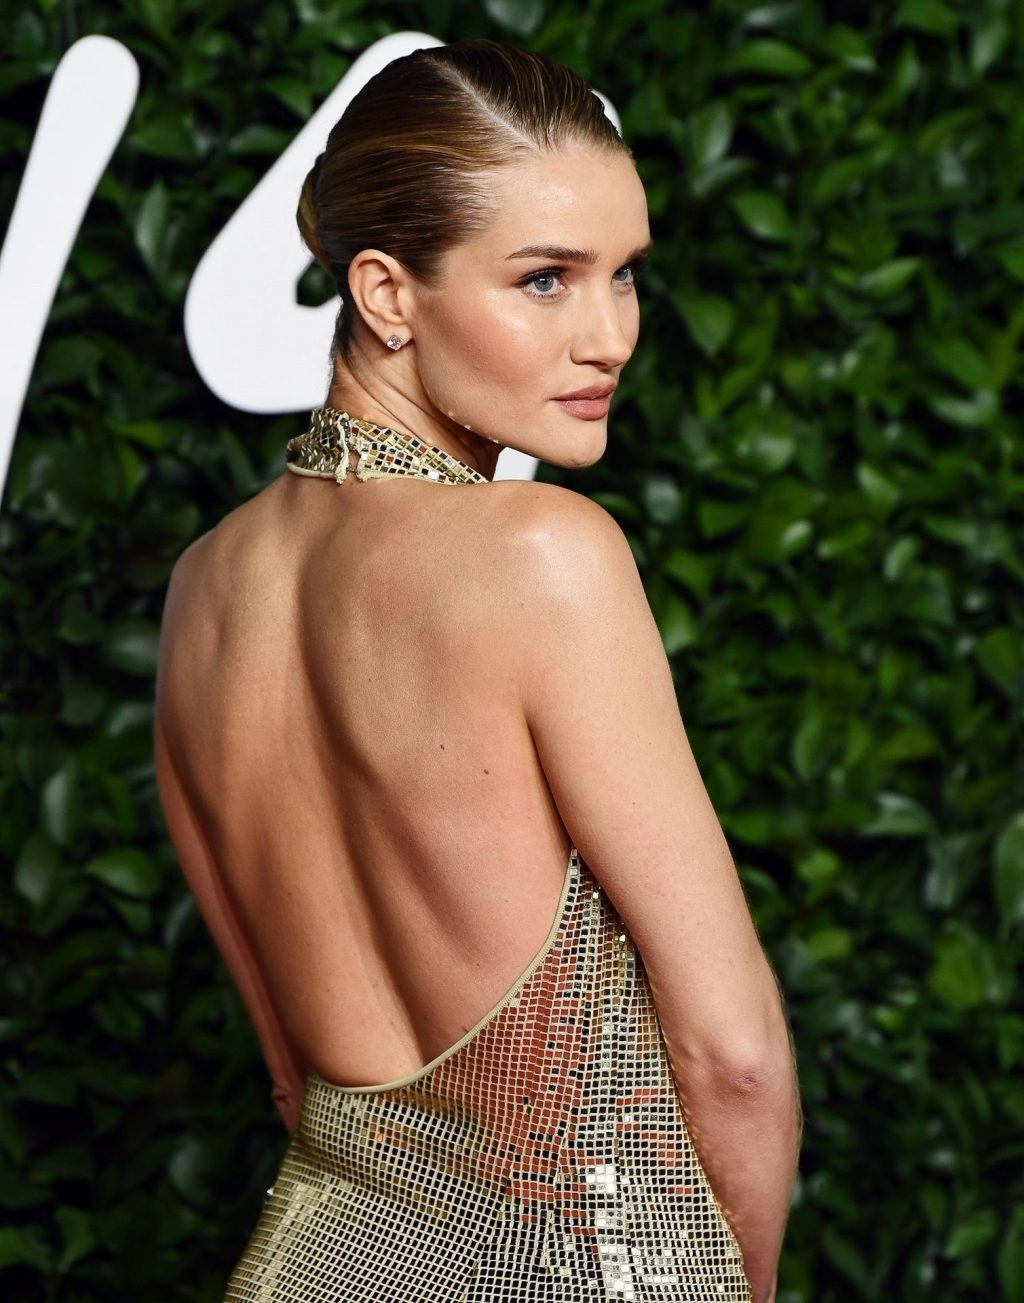 Rosie Huntington-Whiteley Sexy (27 Photos)